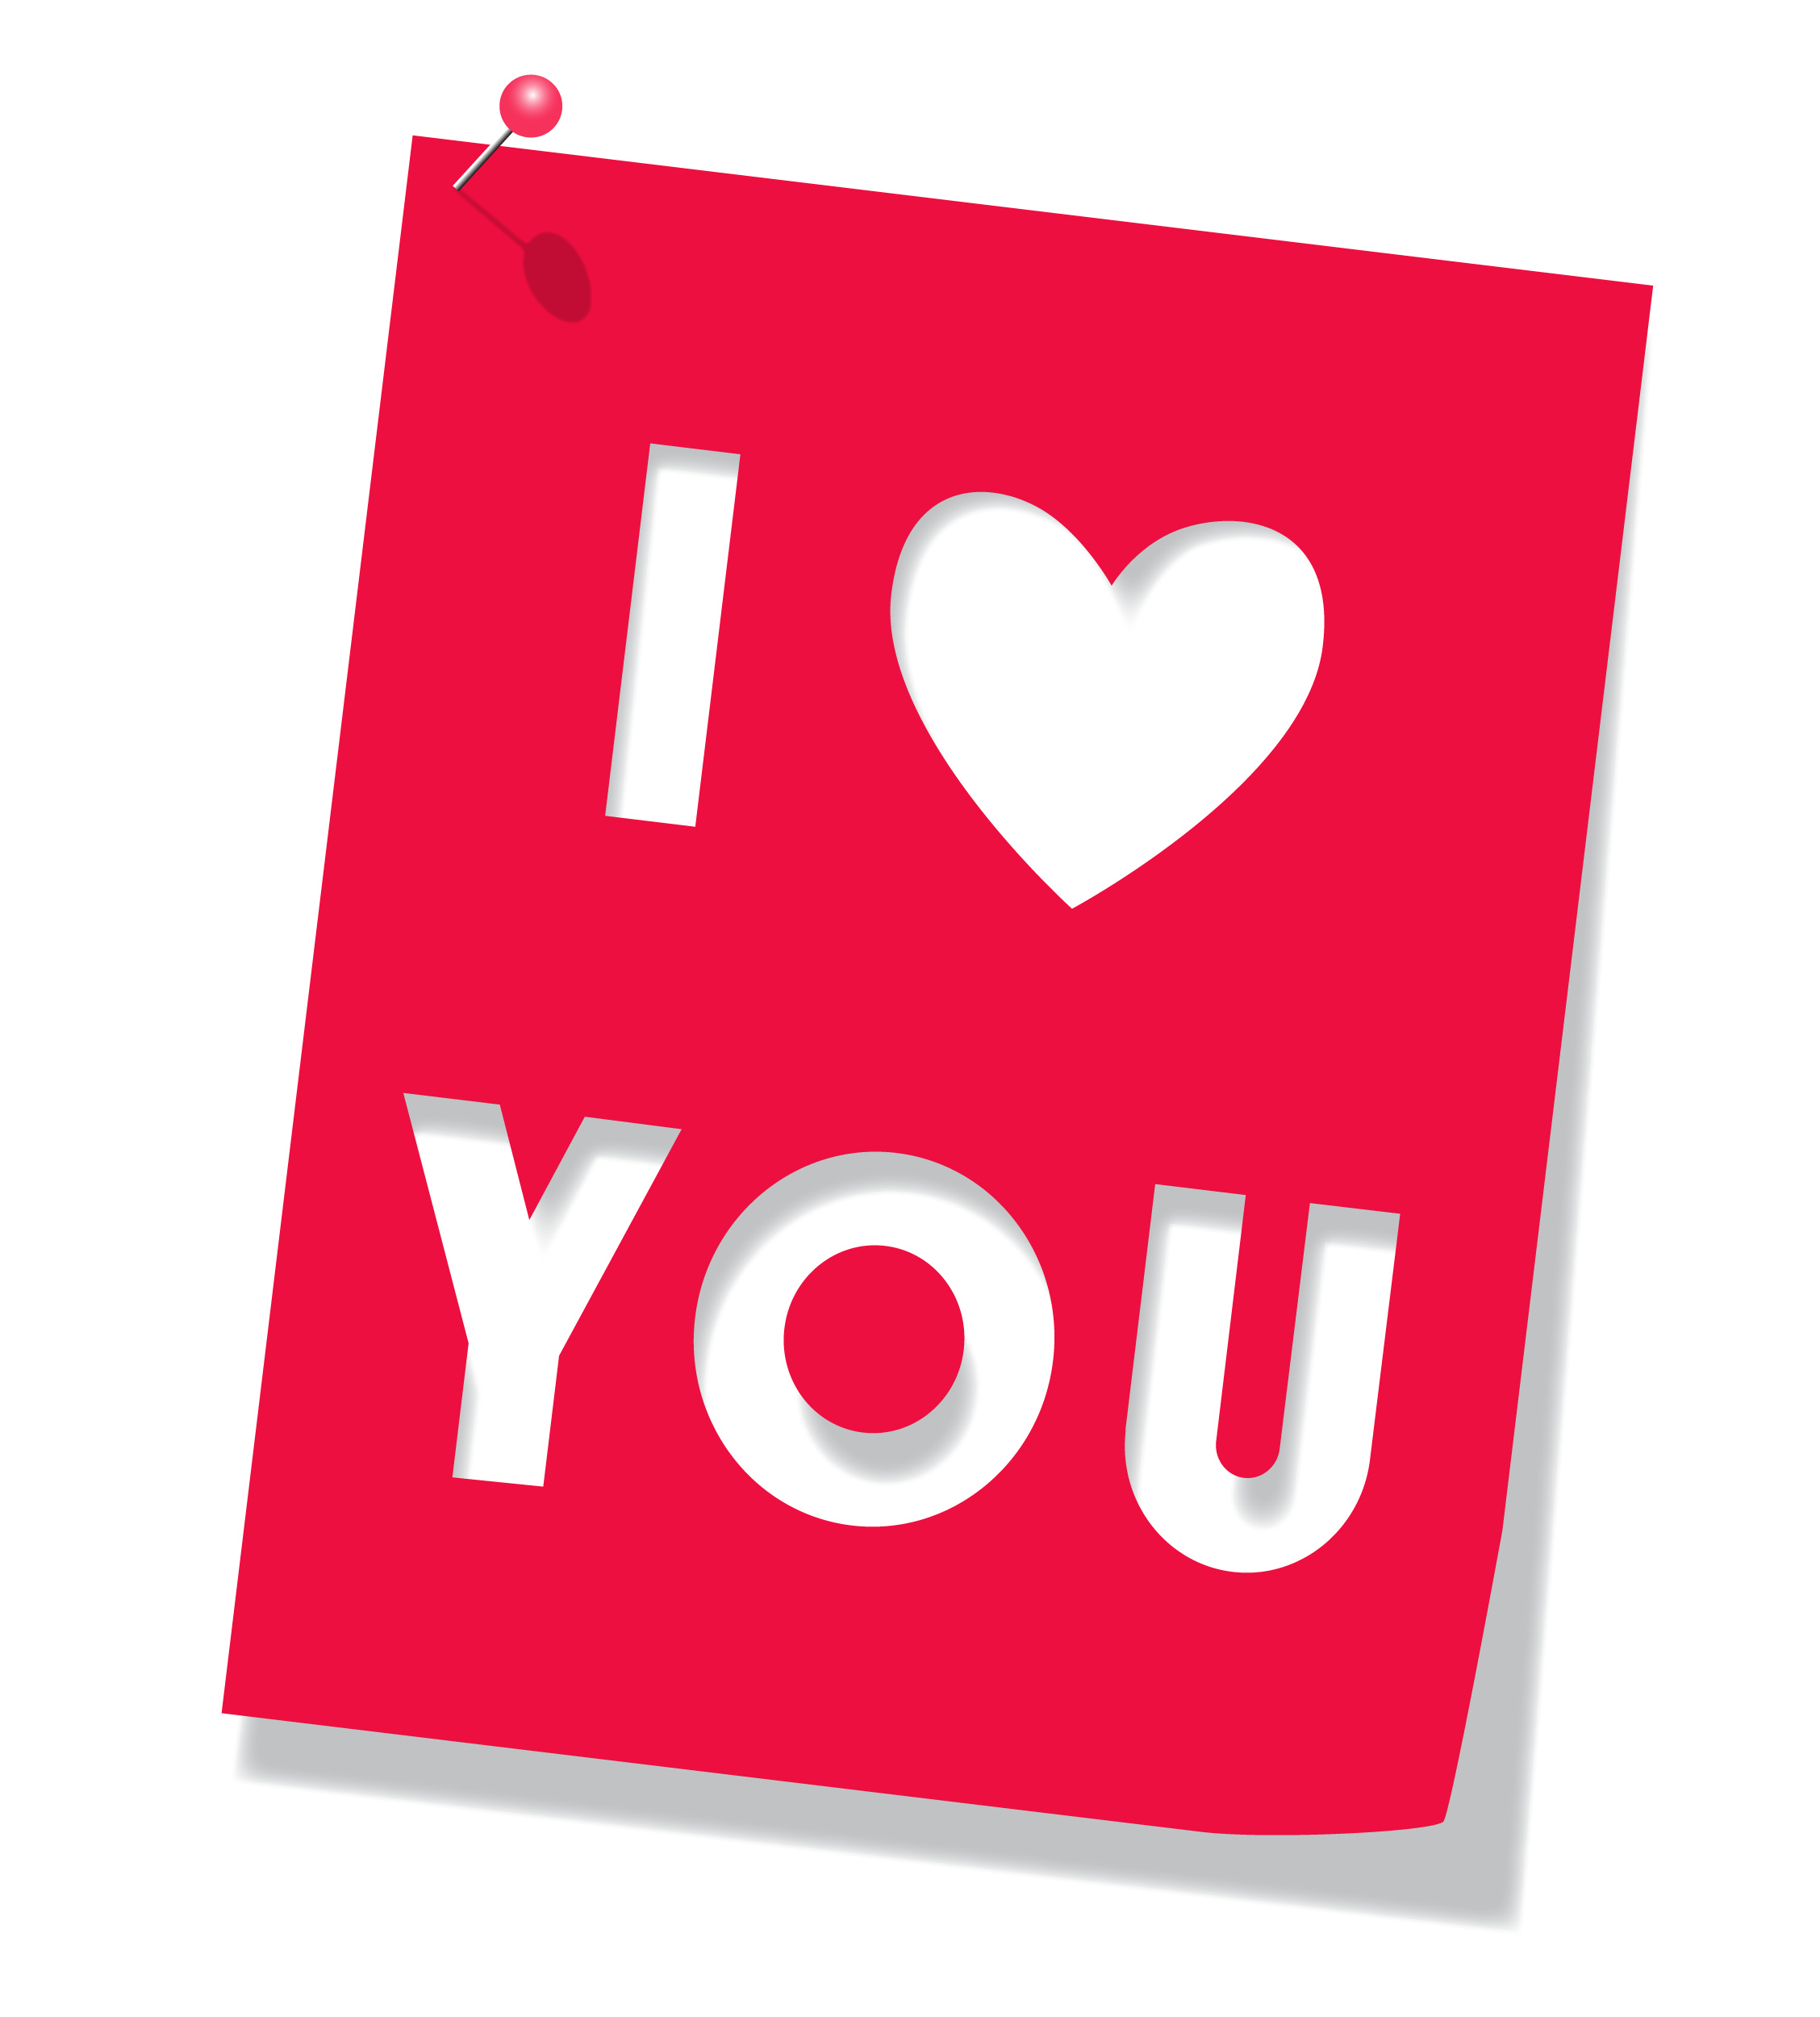 I heart png. Red love you clipart